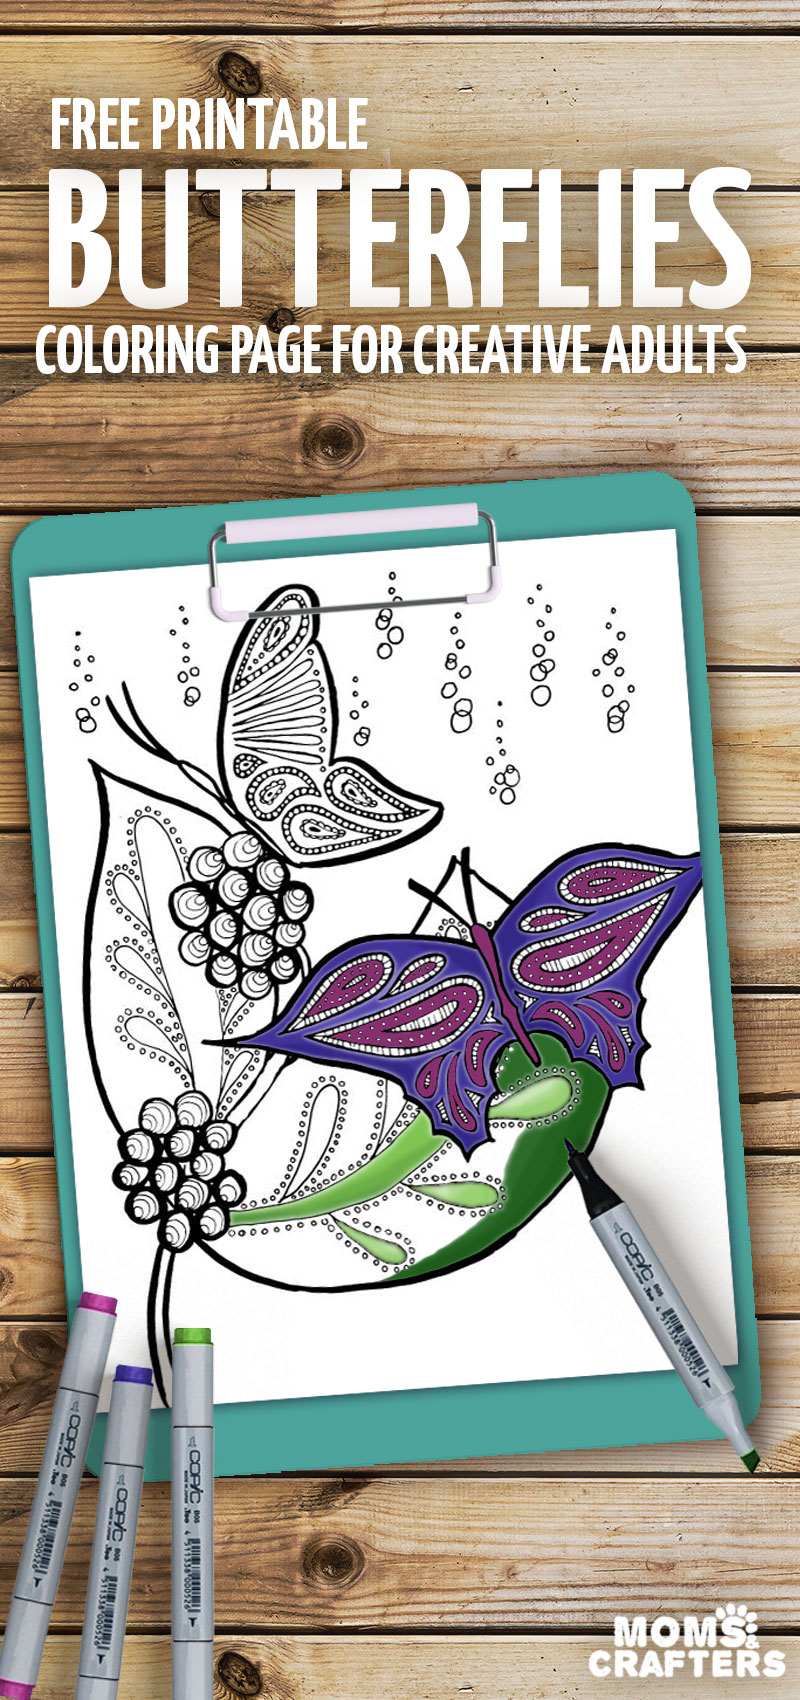 Print these beautiful butterflies coloring pages for adults - these stunning Spring and Summer coloring pages are totally relaxing and colour therapy - enjoy these free printables!